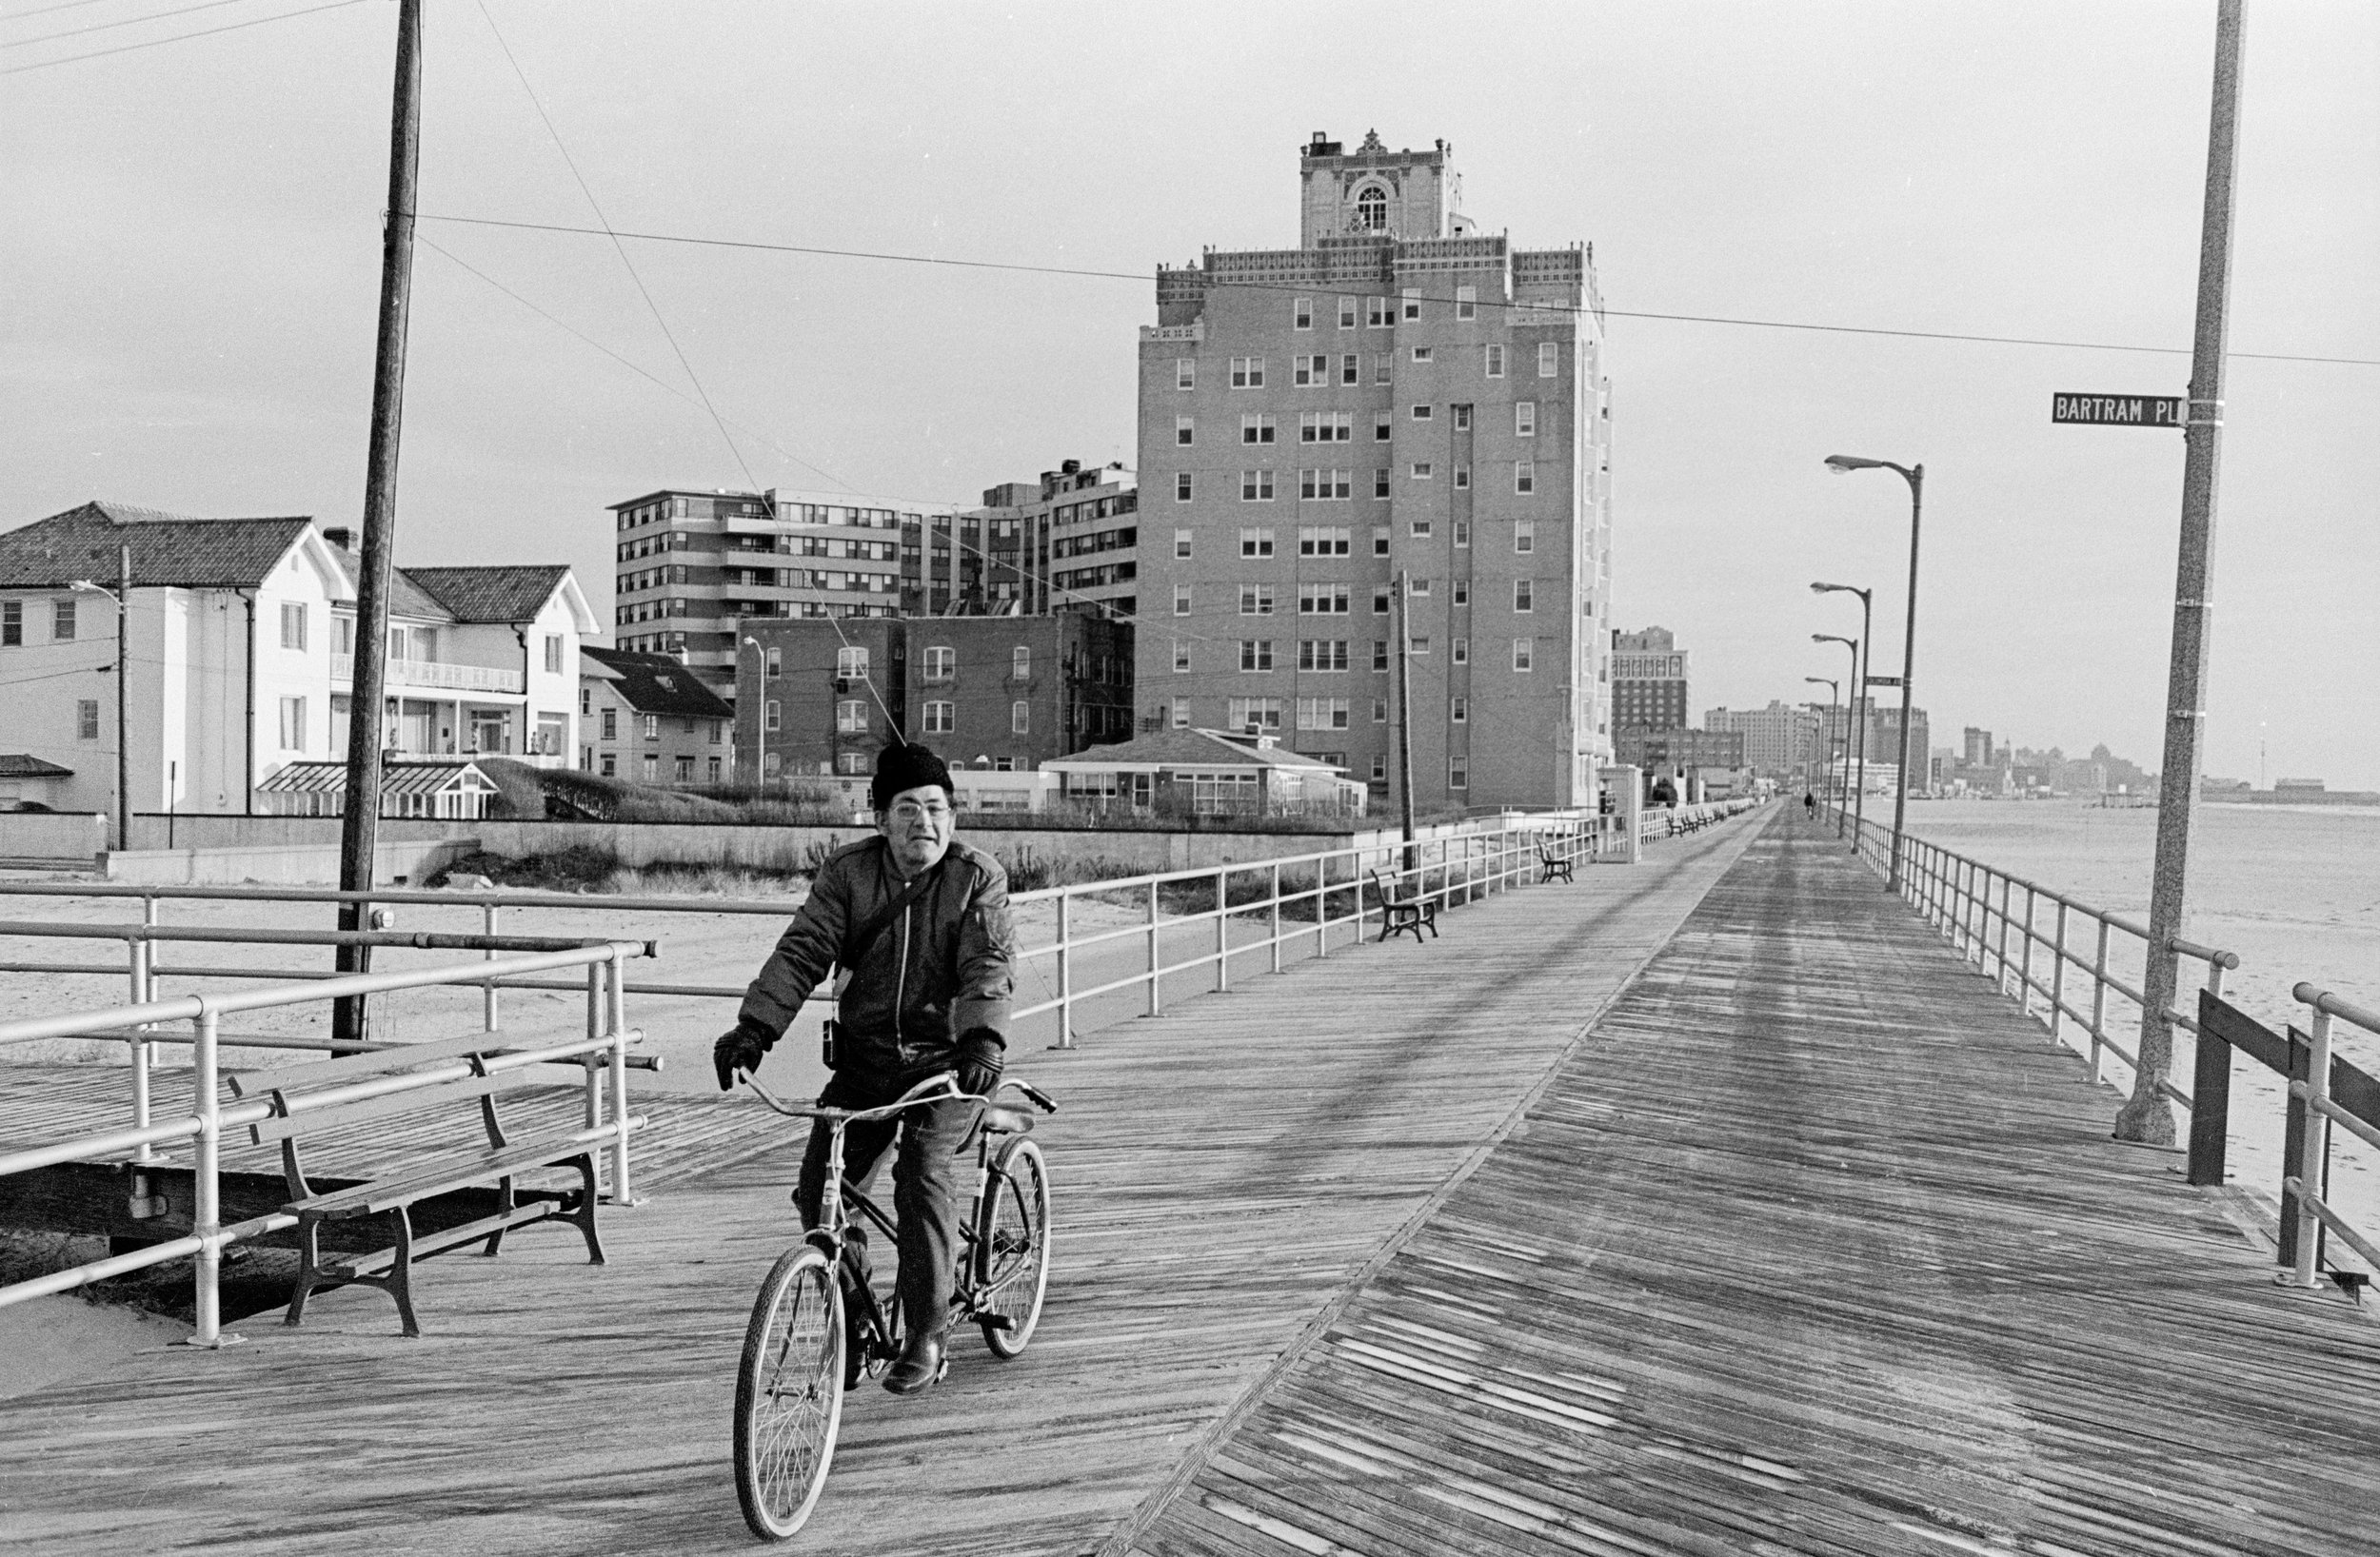 bicycleboardwalk.jpg